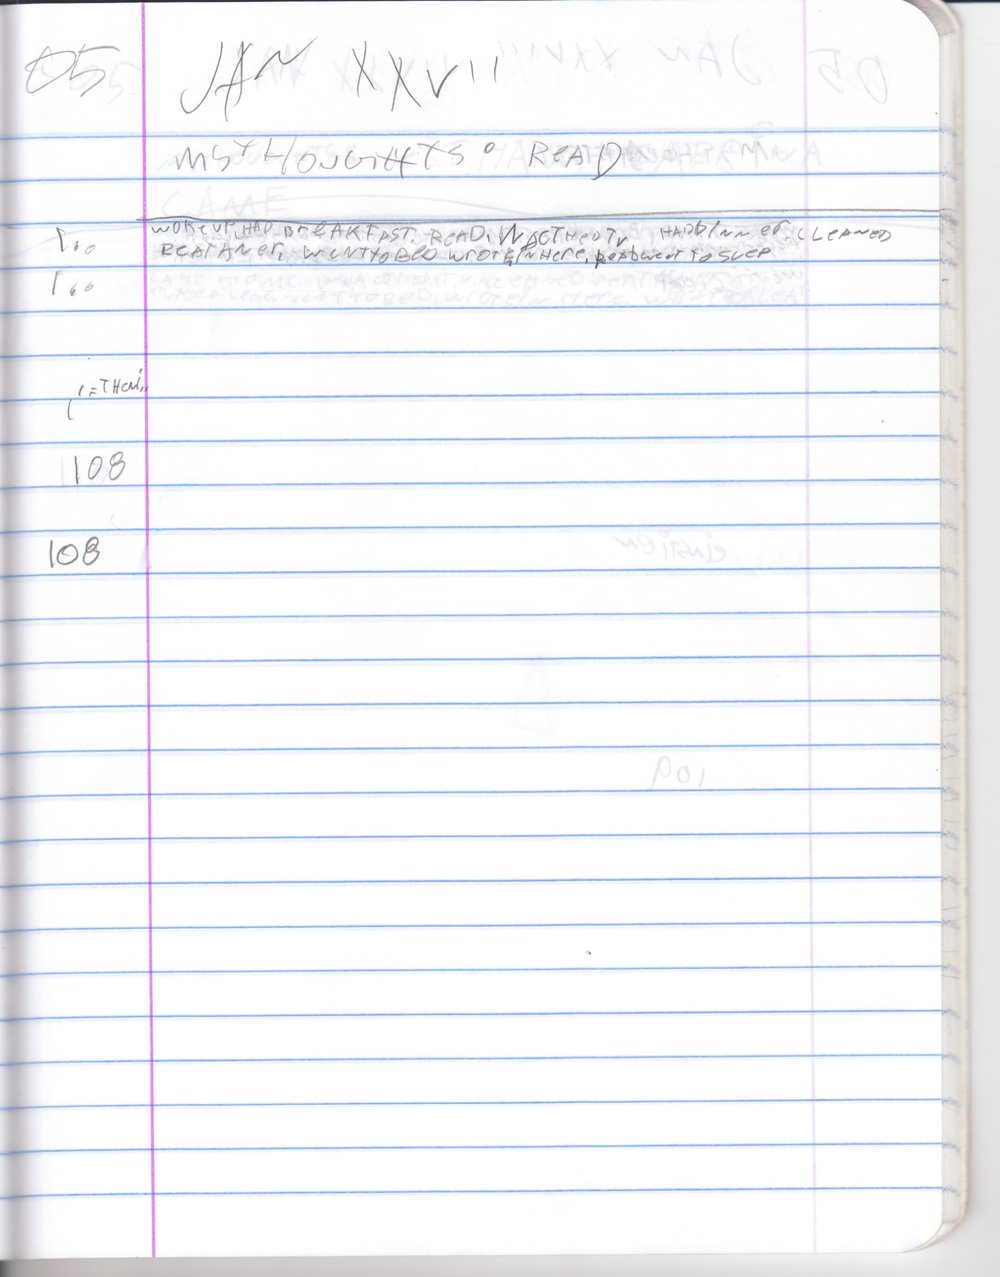 my first diary-log_Page_110.jpg